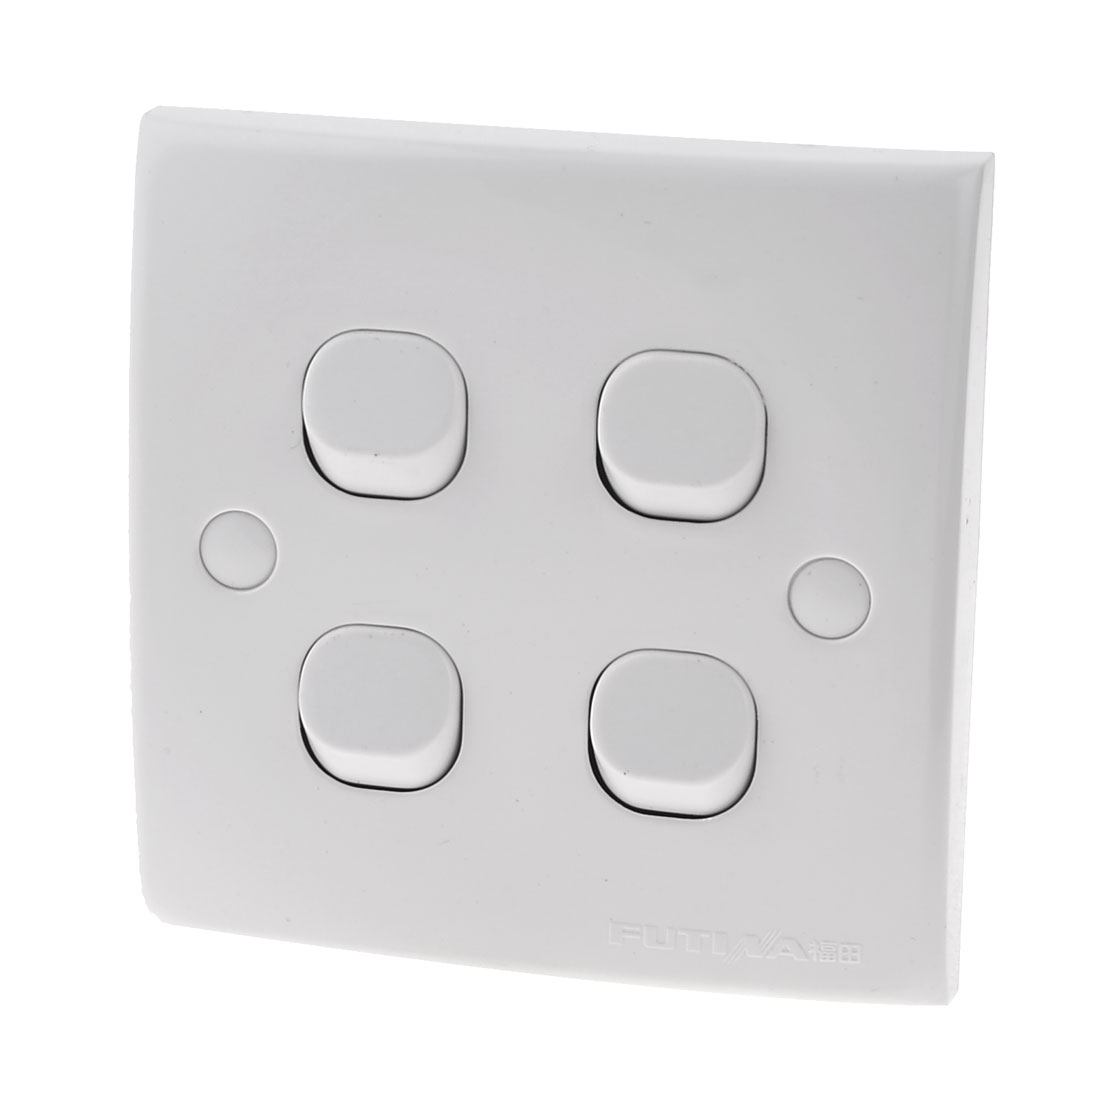 White Square 4 Gang On/Off Press Button Type Wall Switch Plate 10A 250V